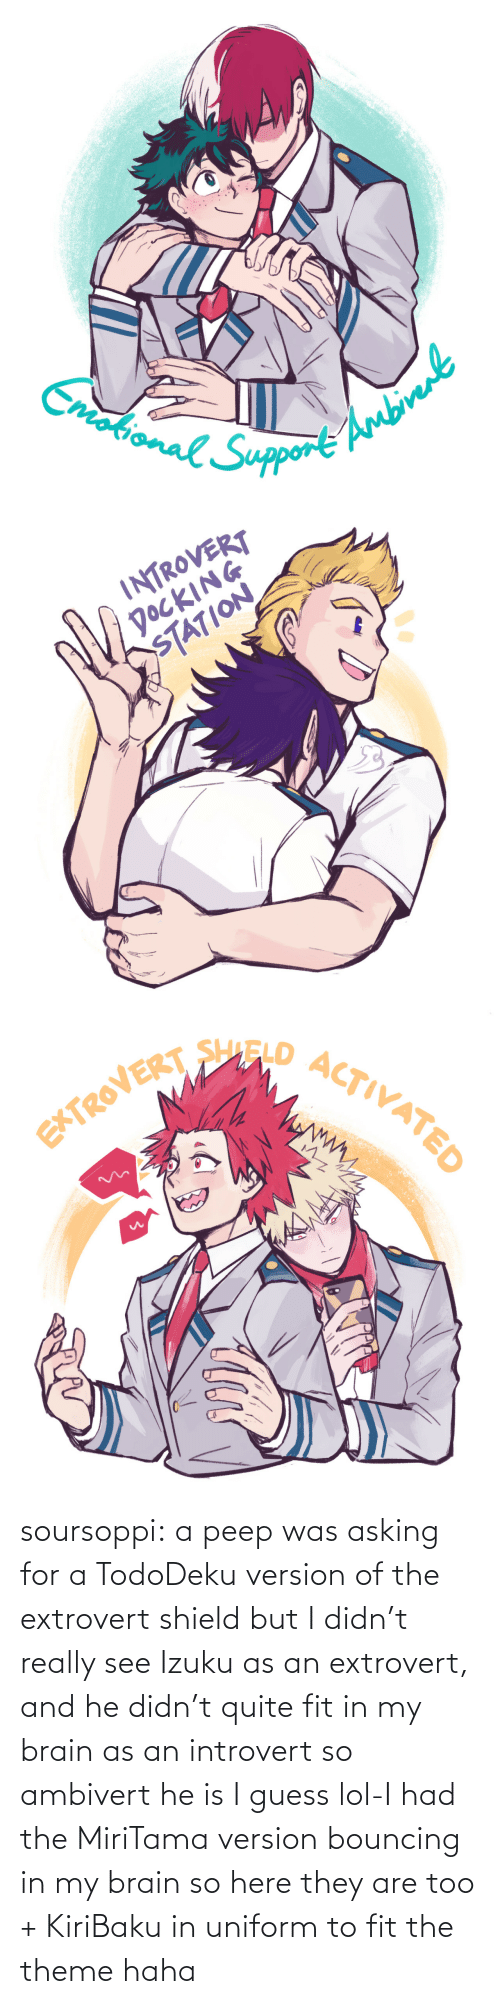 Guess: soursoppi:  a peep was asking for a TodoDeku version of the extrovert shield but I didn't really see Izuku as an extrovert, and he didn't quite fit in my brain as an introvert so ambivert he is I guess lol-I had the MiriTama version bouncing in my brain so here they are too + KiriBaku in uniform to fit the theme haha